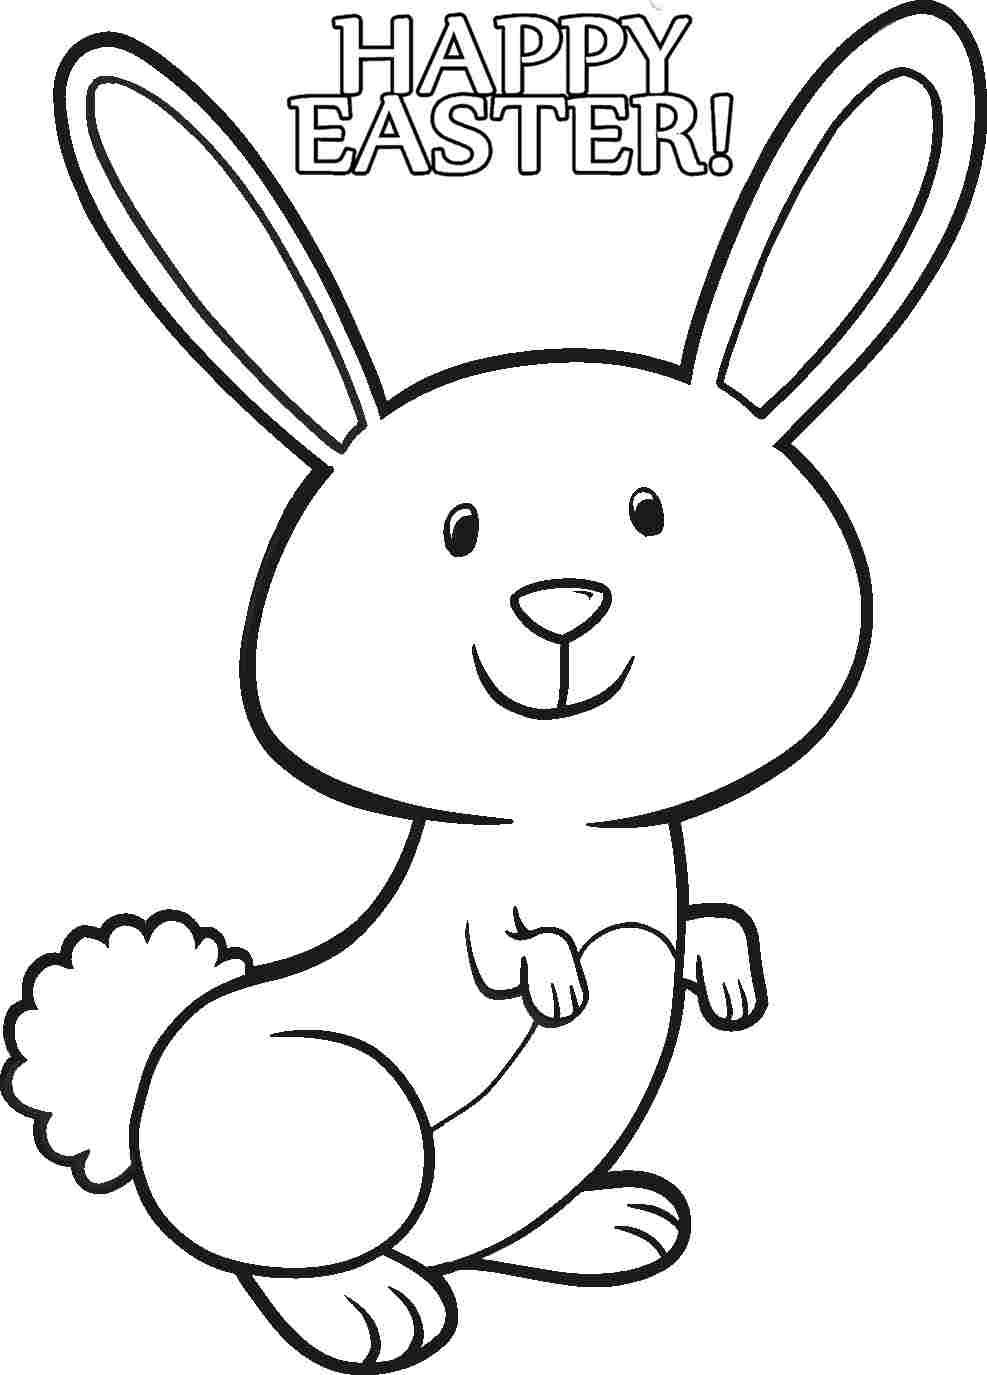 Coloring Pages Bunnies Coloring Pages baby bunny coloring pages az of cute bunnies for kids and adults